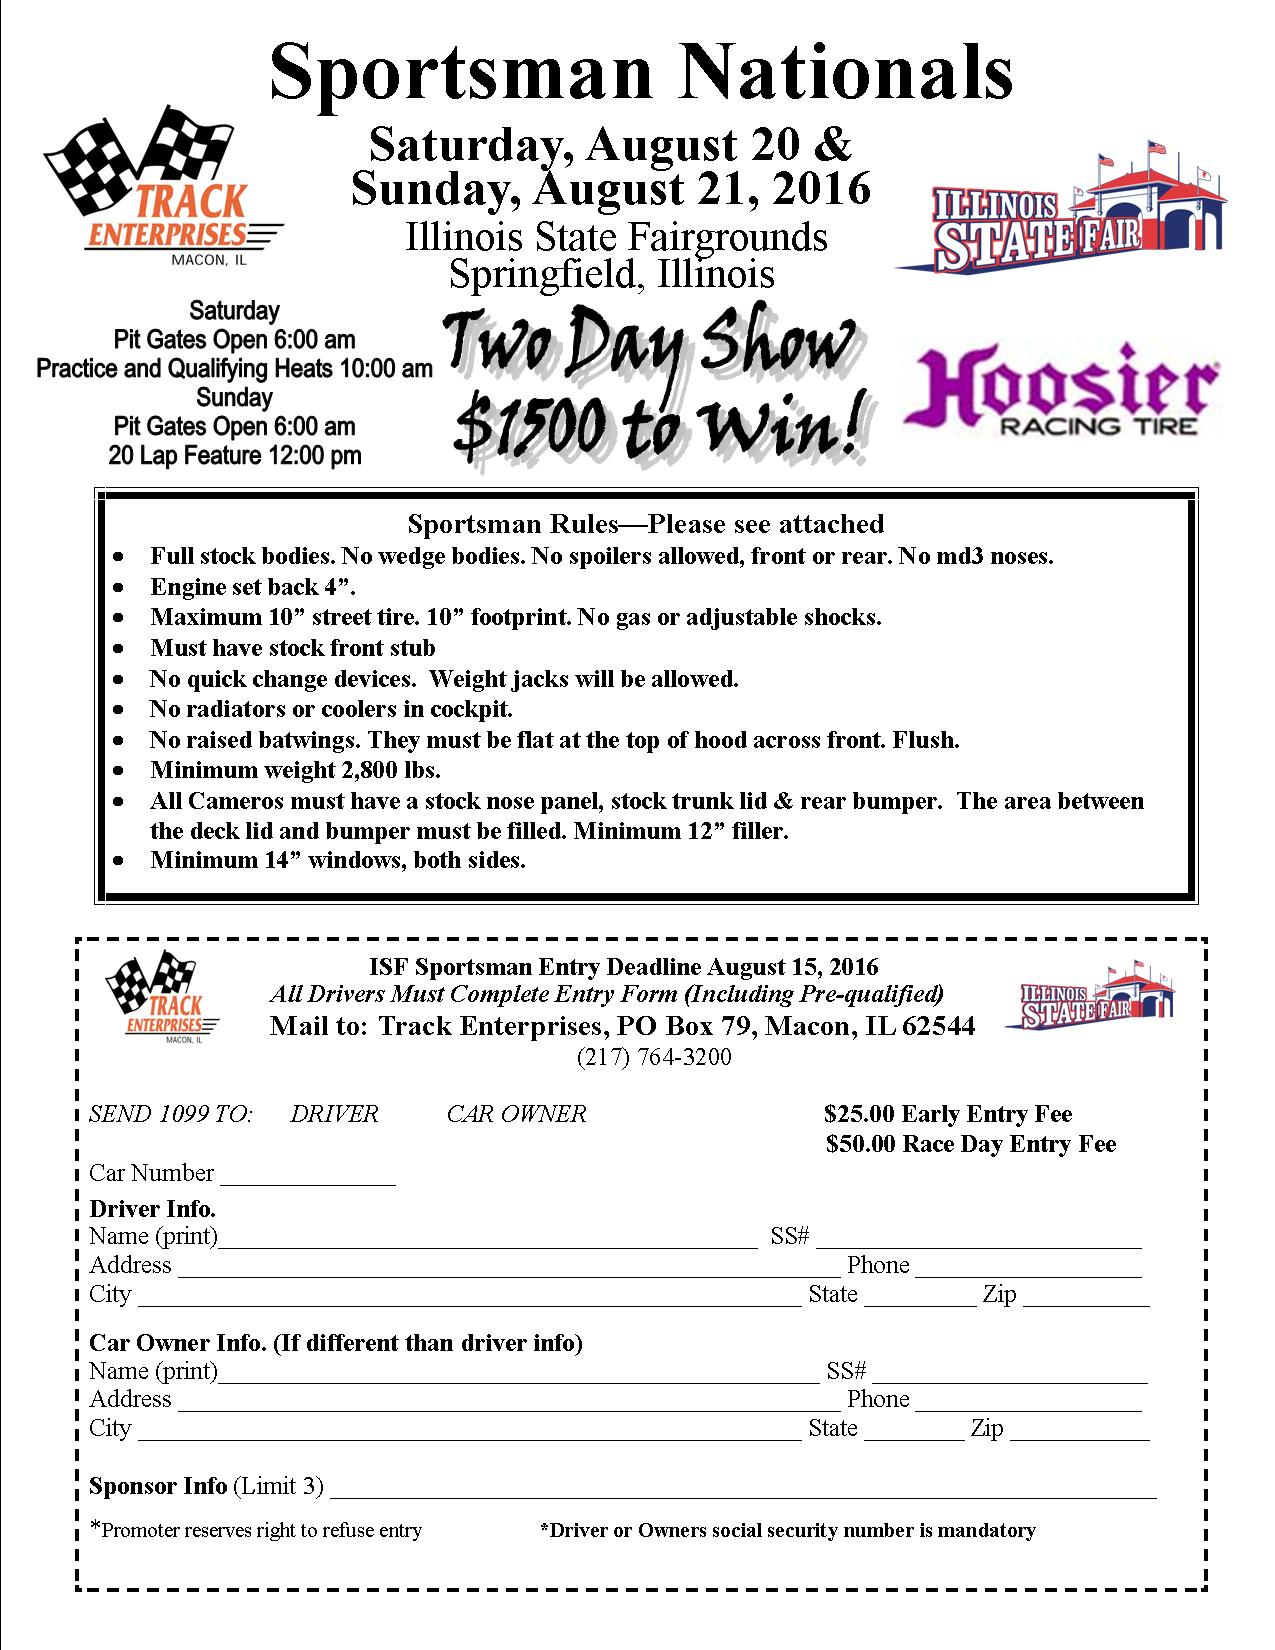 Sportsman entry form Illinois State Fair 2016